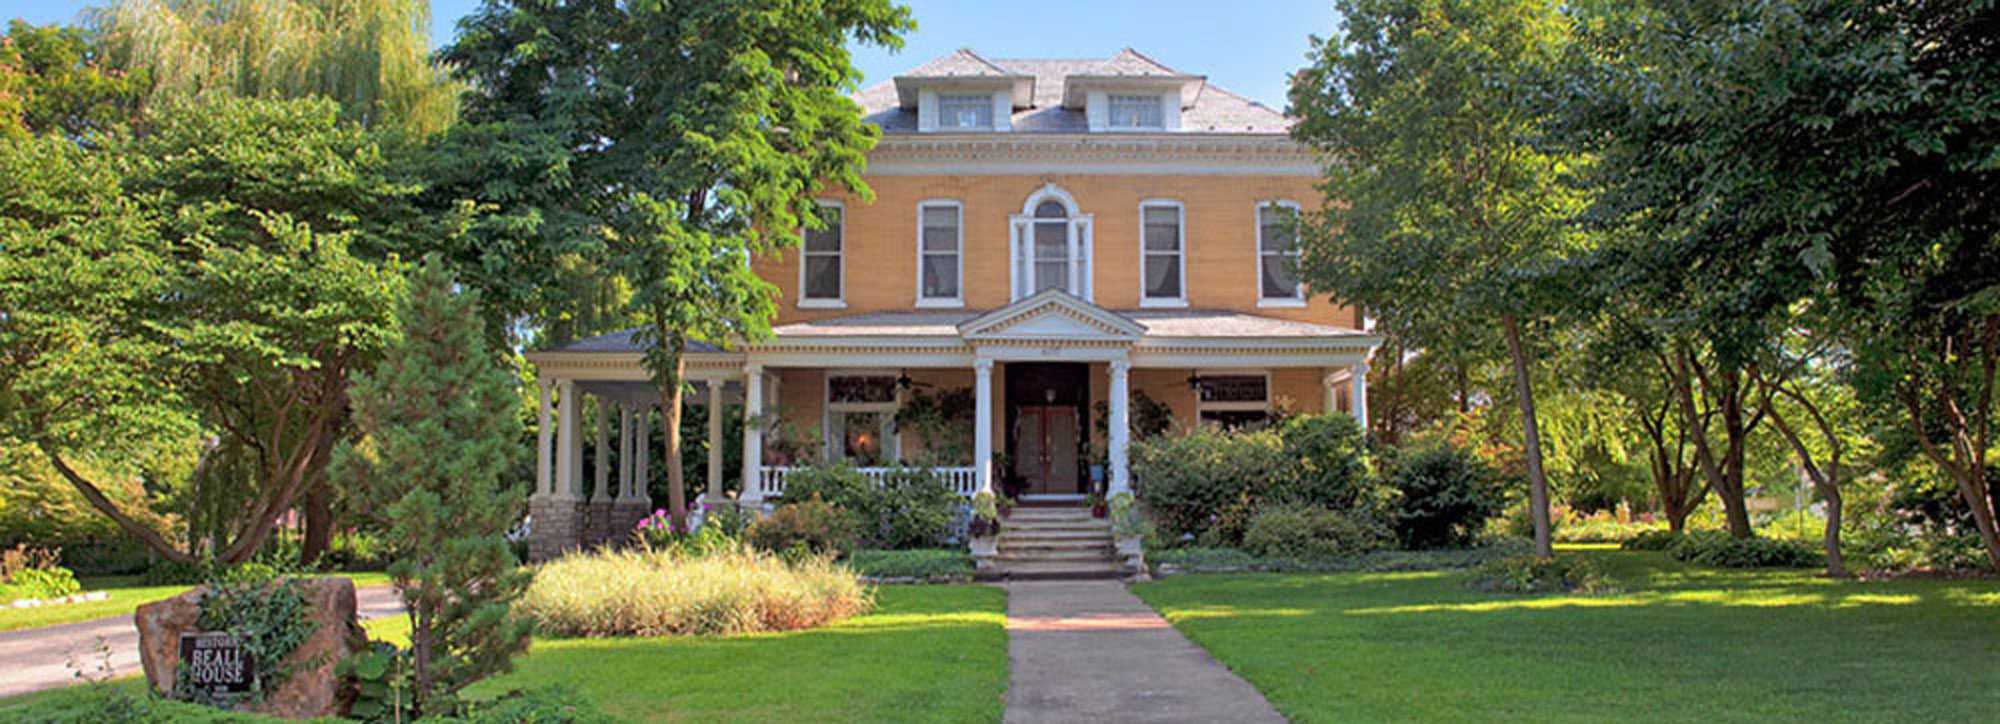 Beall Mansion Bed & Breakfast St. Louis